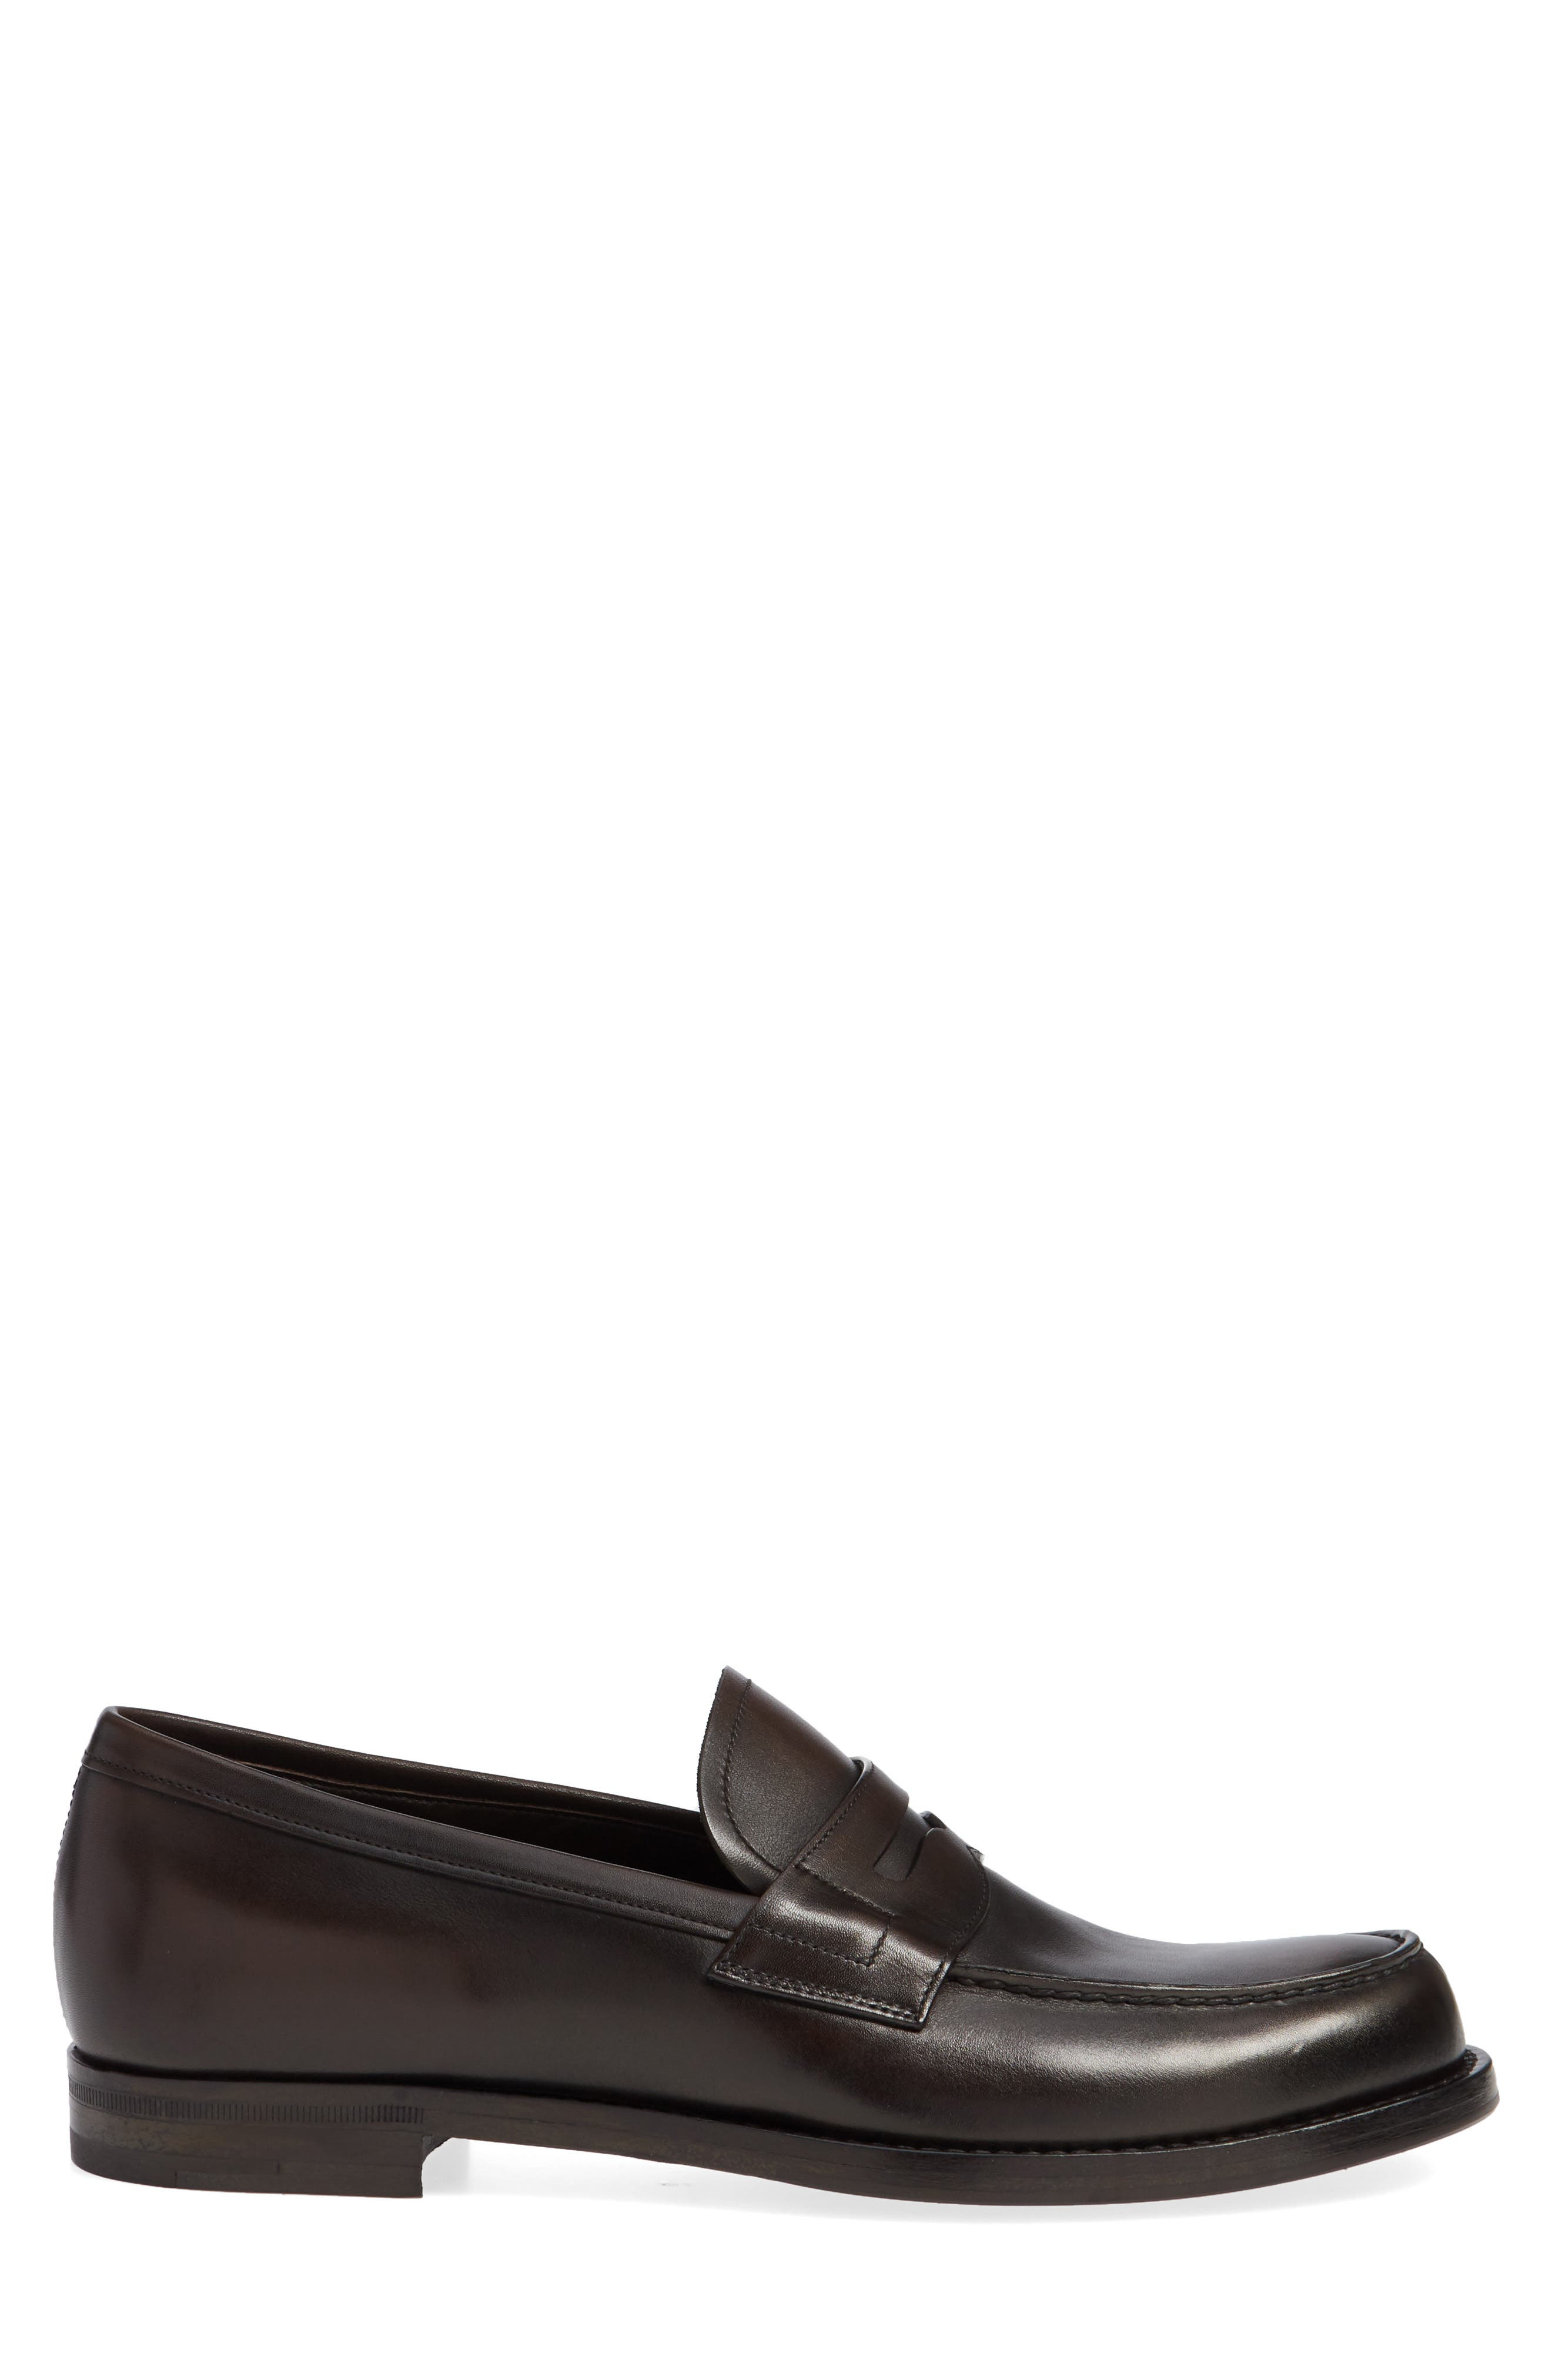 Penny Loafer,                             Alternate thumbnail 3, color,                             MORO BROWN